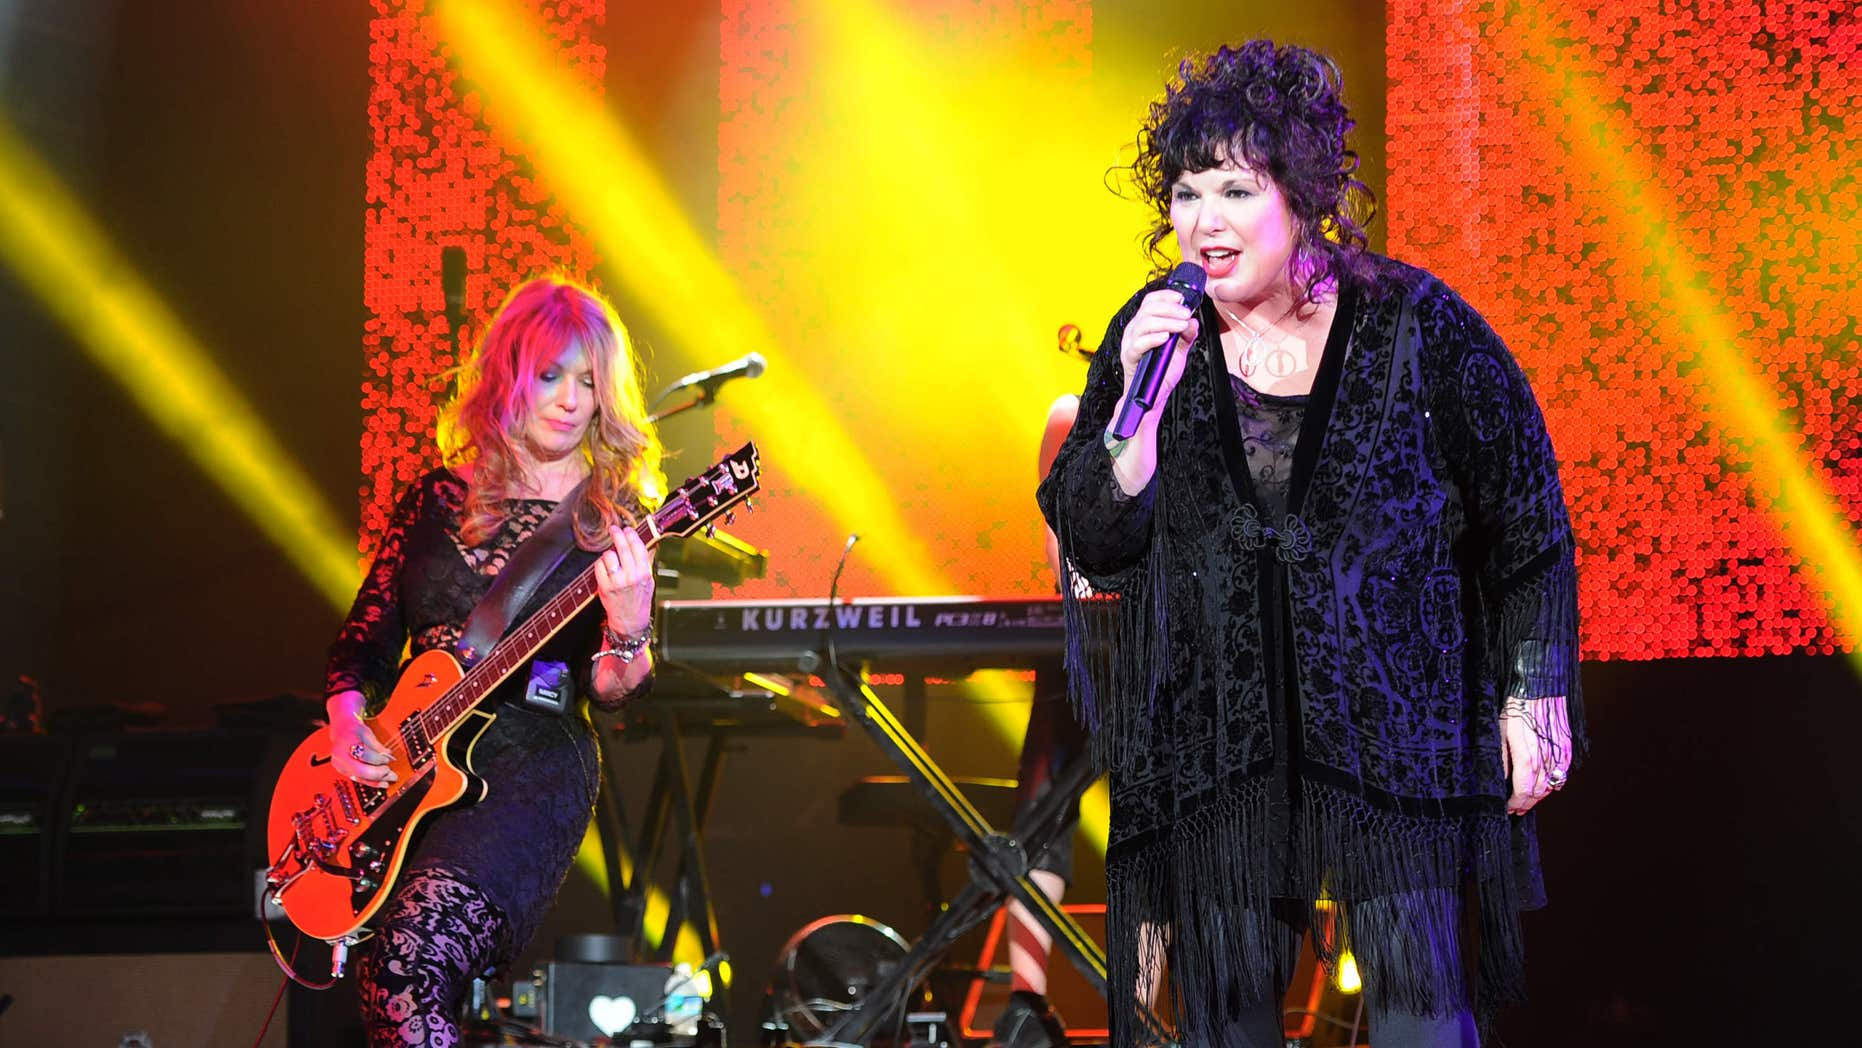 FILE - This June 17, 2013 file photo shows Nancy Wilson, left, and Ann Wilson of Heart performing on opening night of the Heartbreaker Tour at the Cruzan Amphitheater in West Palm Beach, Fla.